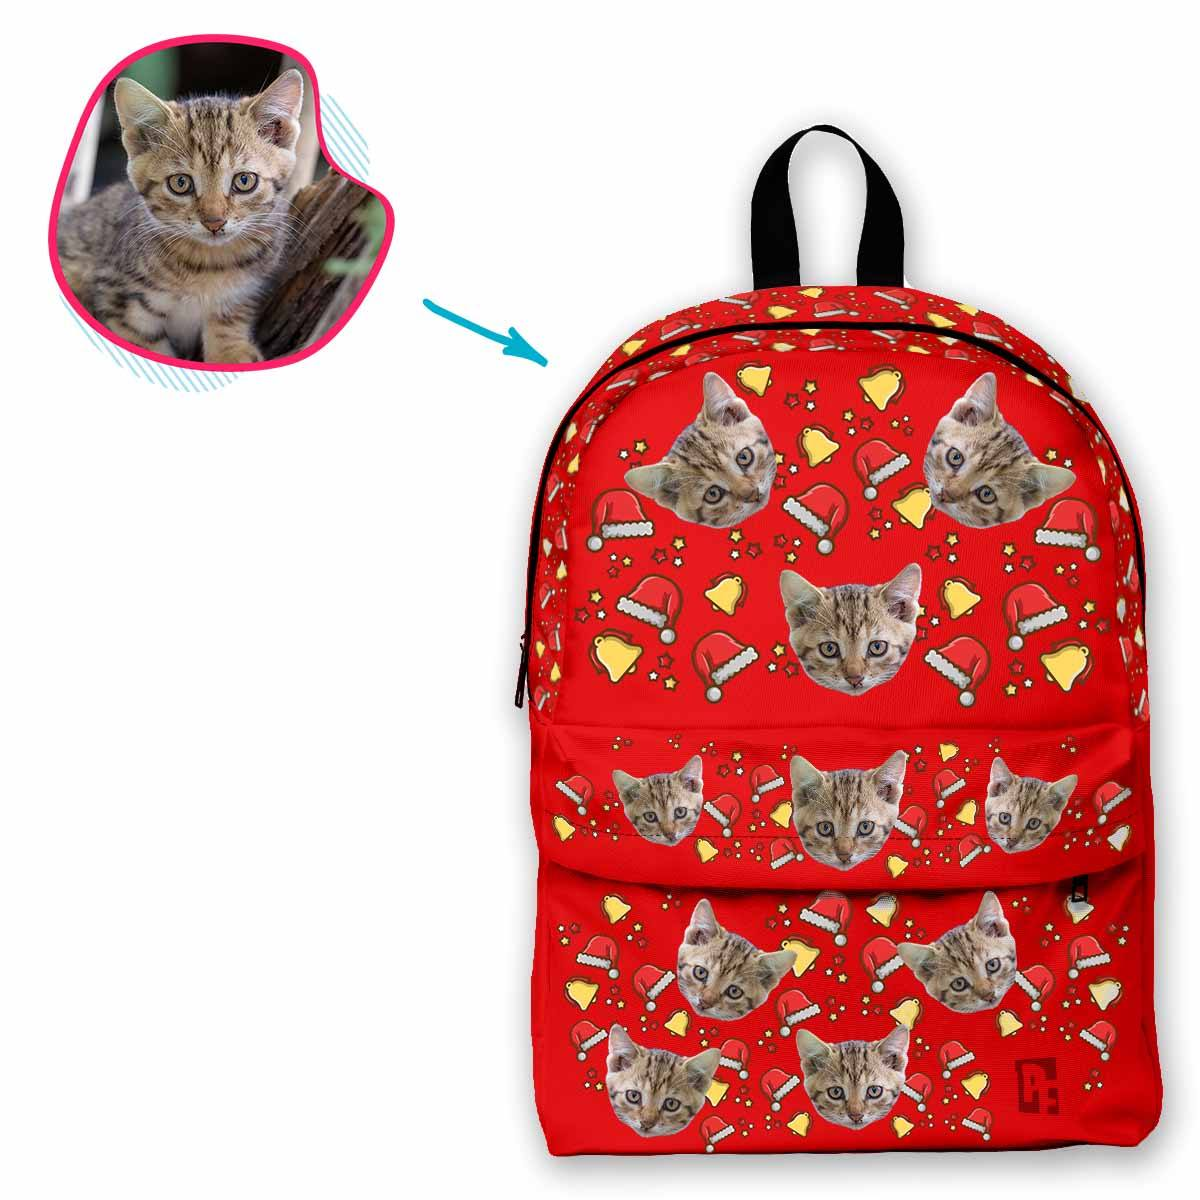 red Santa's Hat classic backpack personalized with photo of face printed on it